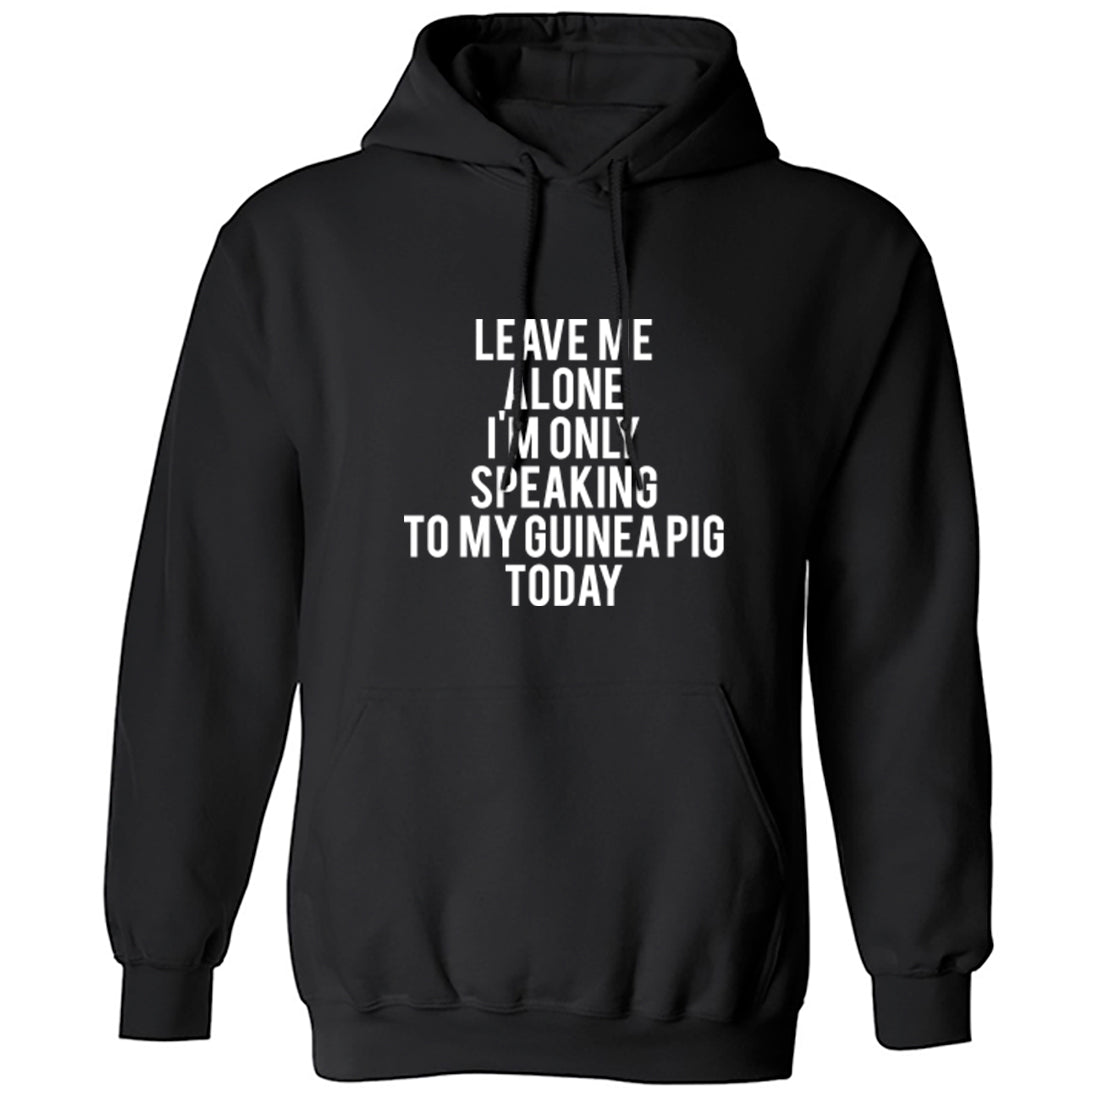 Leave Me Alone I'm Only Speaking To My Guinea Pig Today Unisex Hoodie K0956 - Illustrated Identity Ltd.